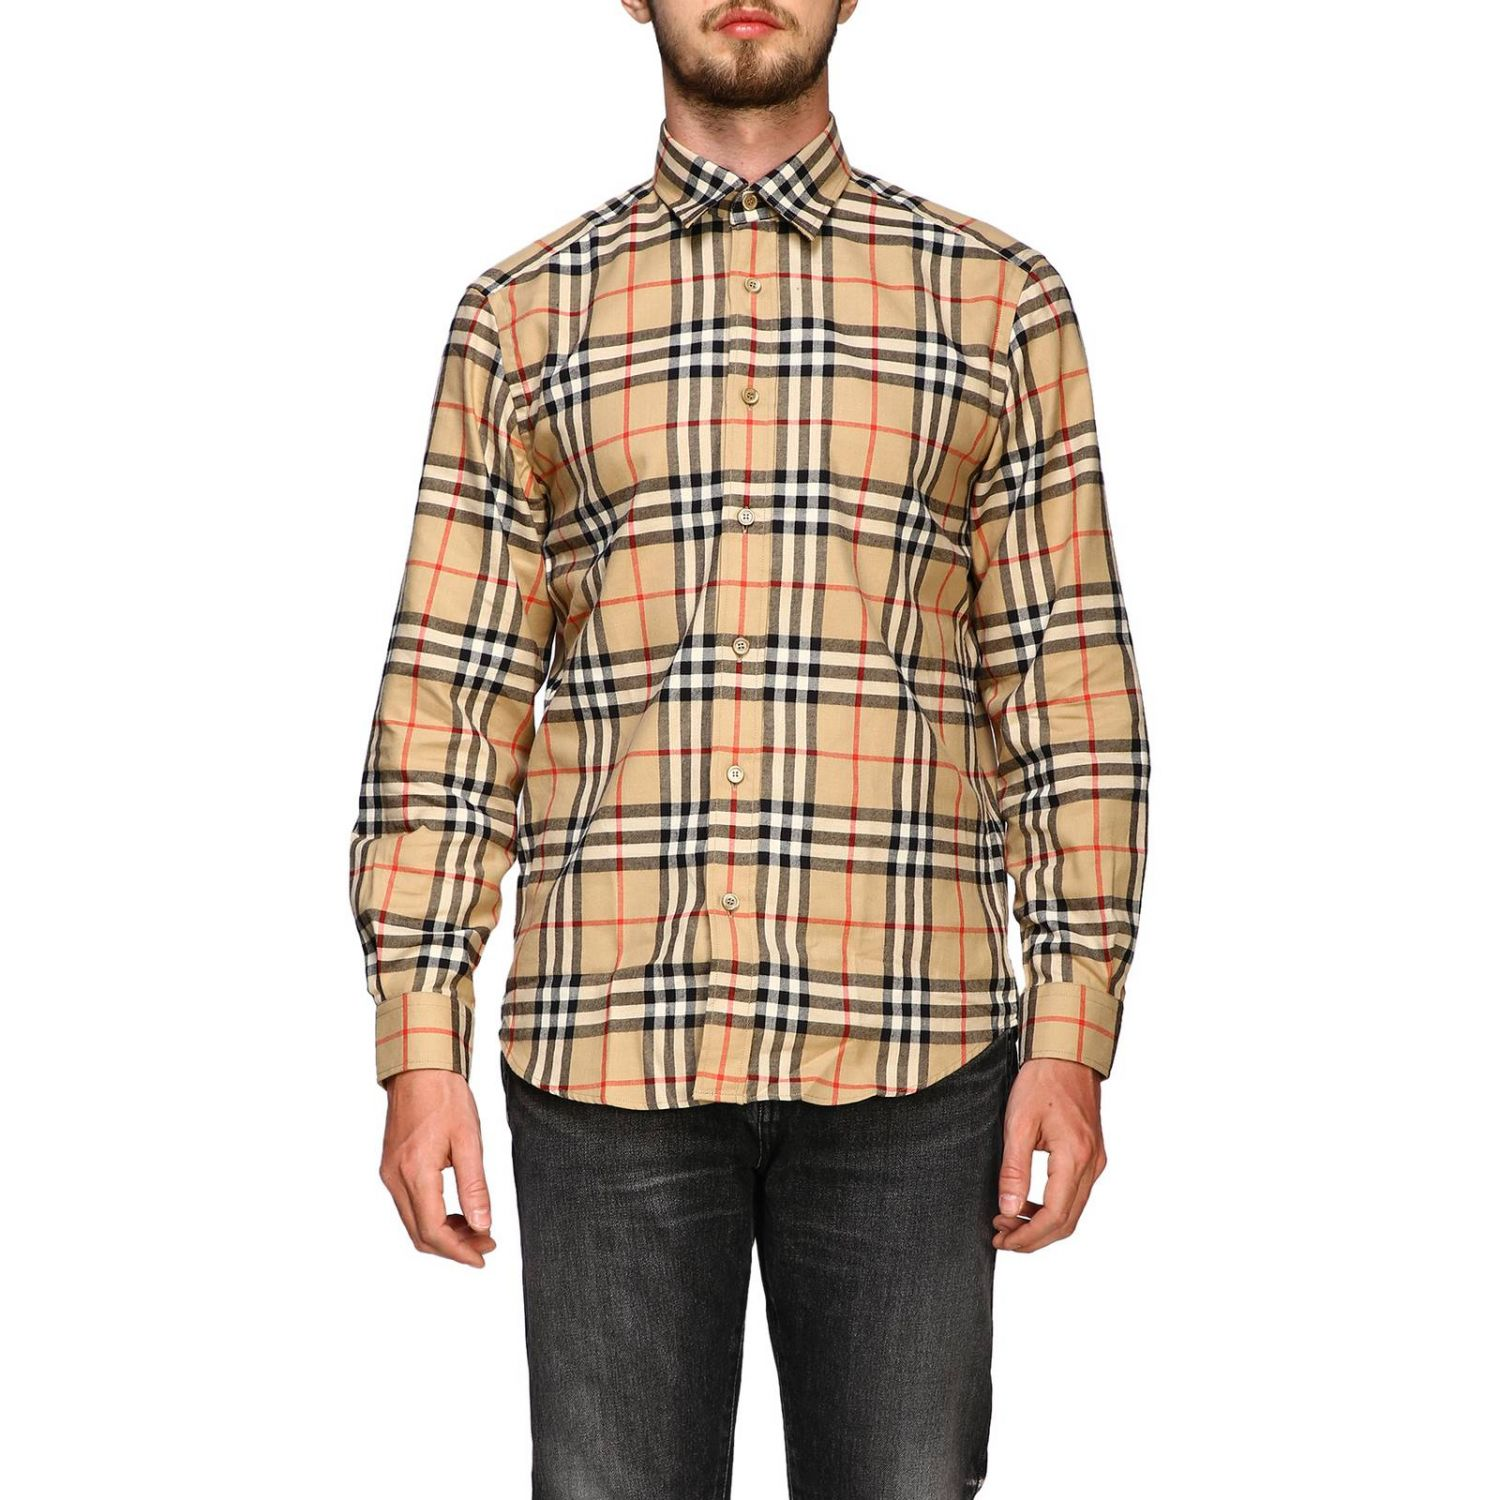 Chemise chambers Burberry motif check beige 1